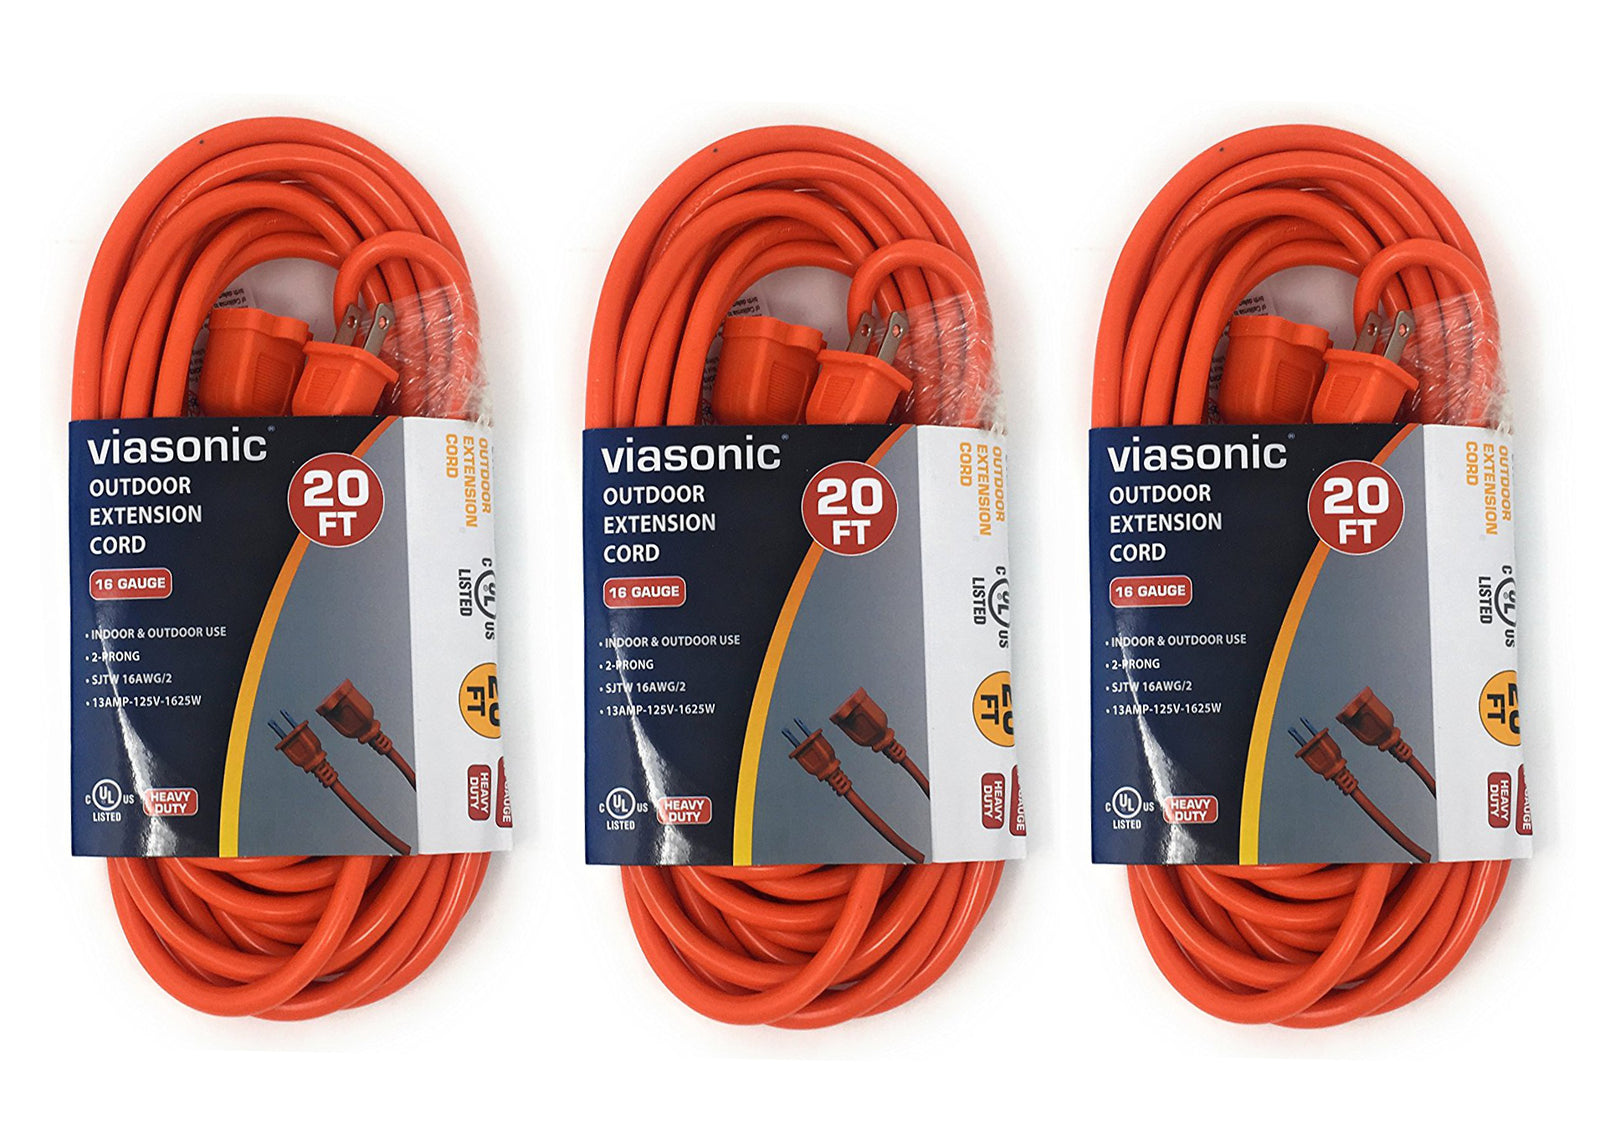 20FT SJTW 16-Gauge 2-Prong Plug - Indoor/Outdoor Cord